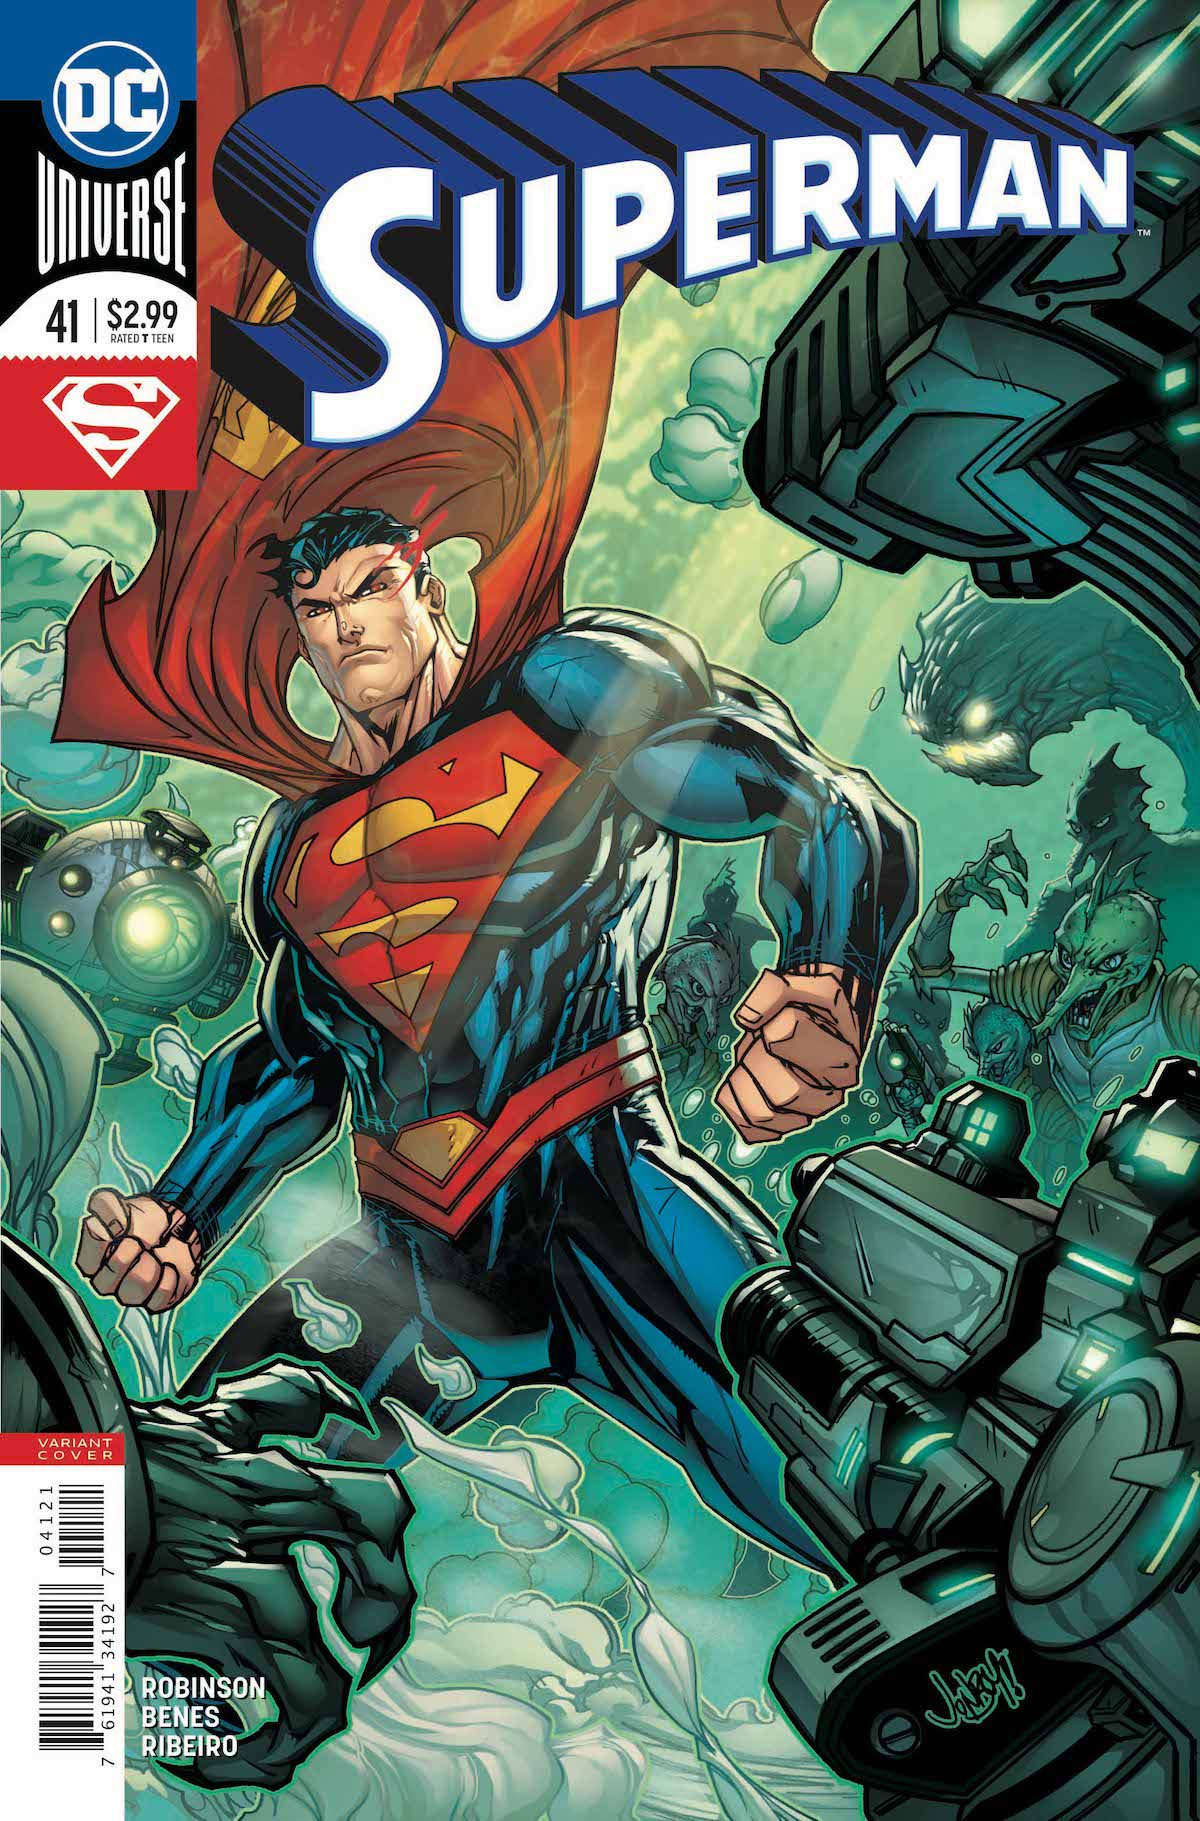 Superman #41 variant cover